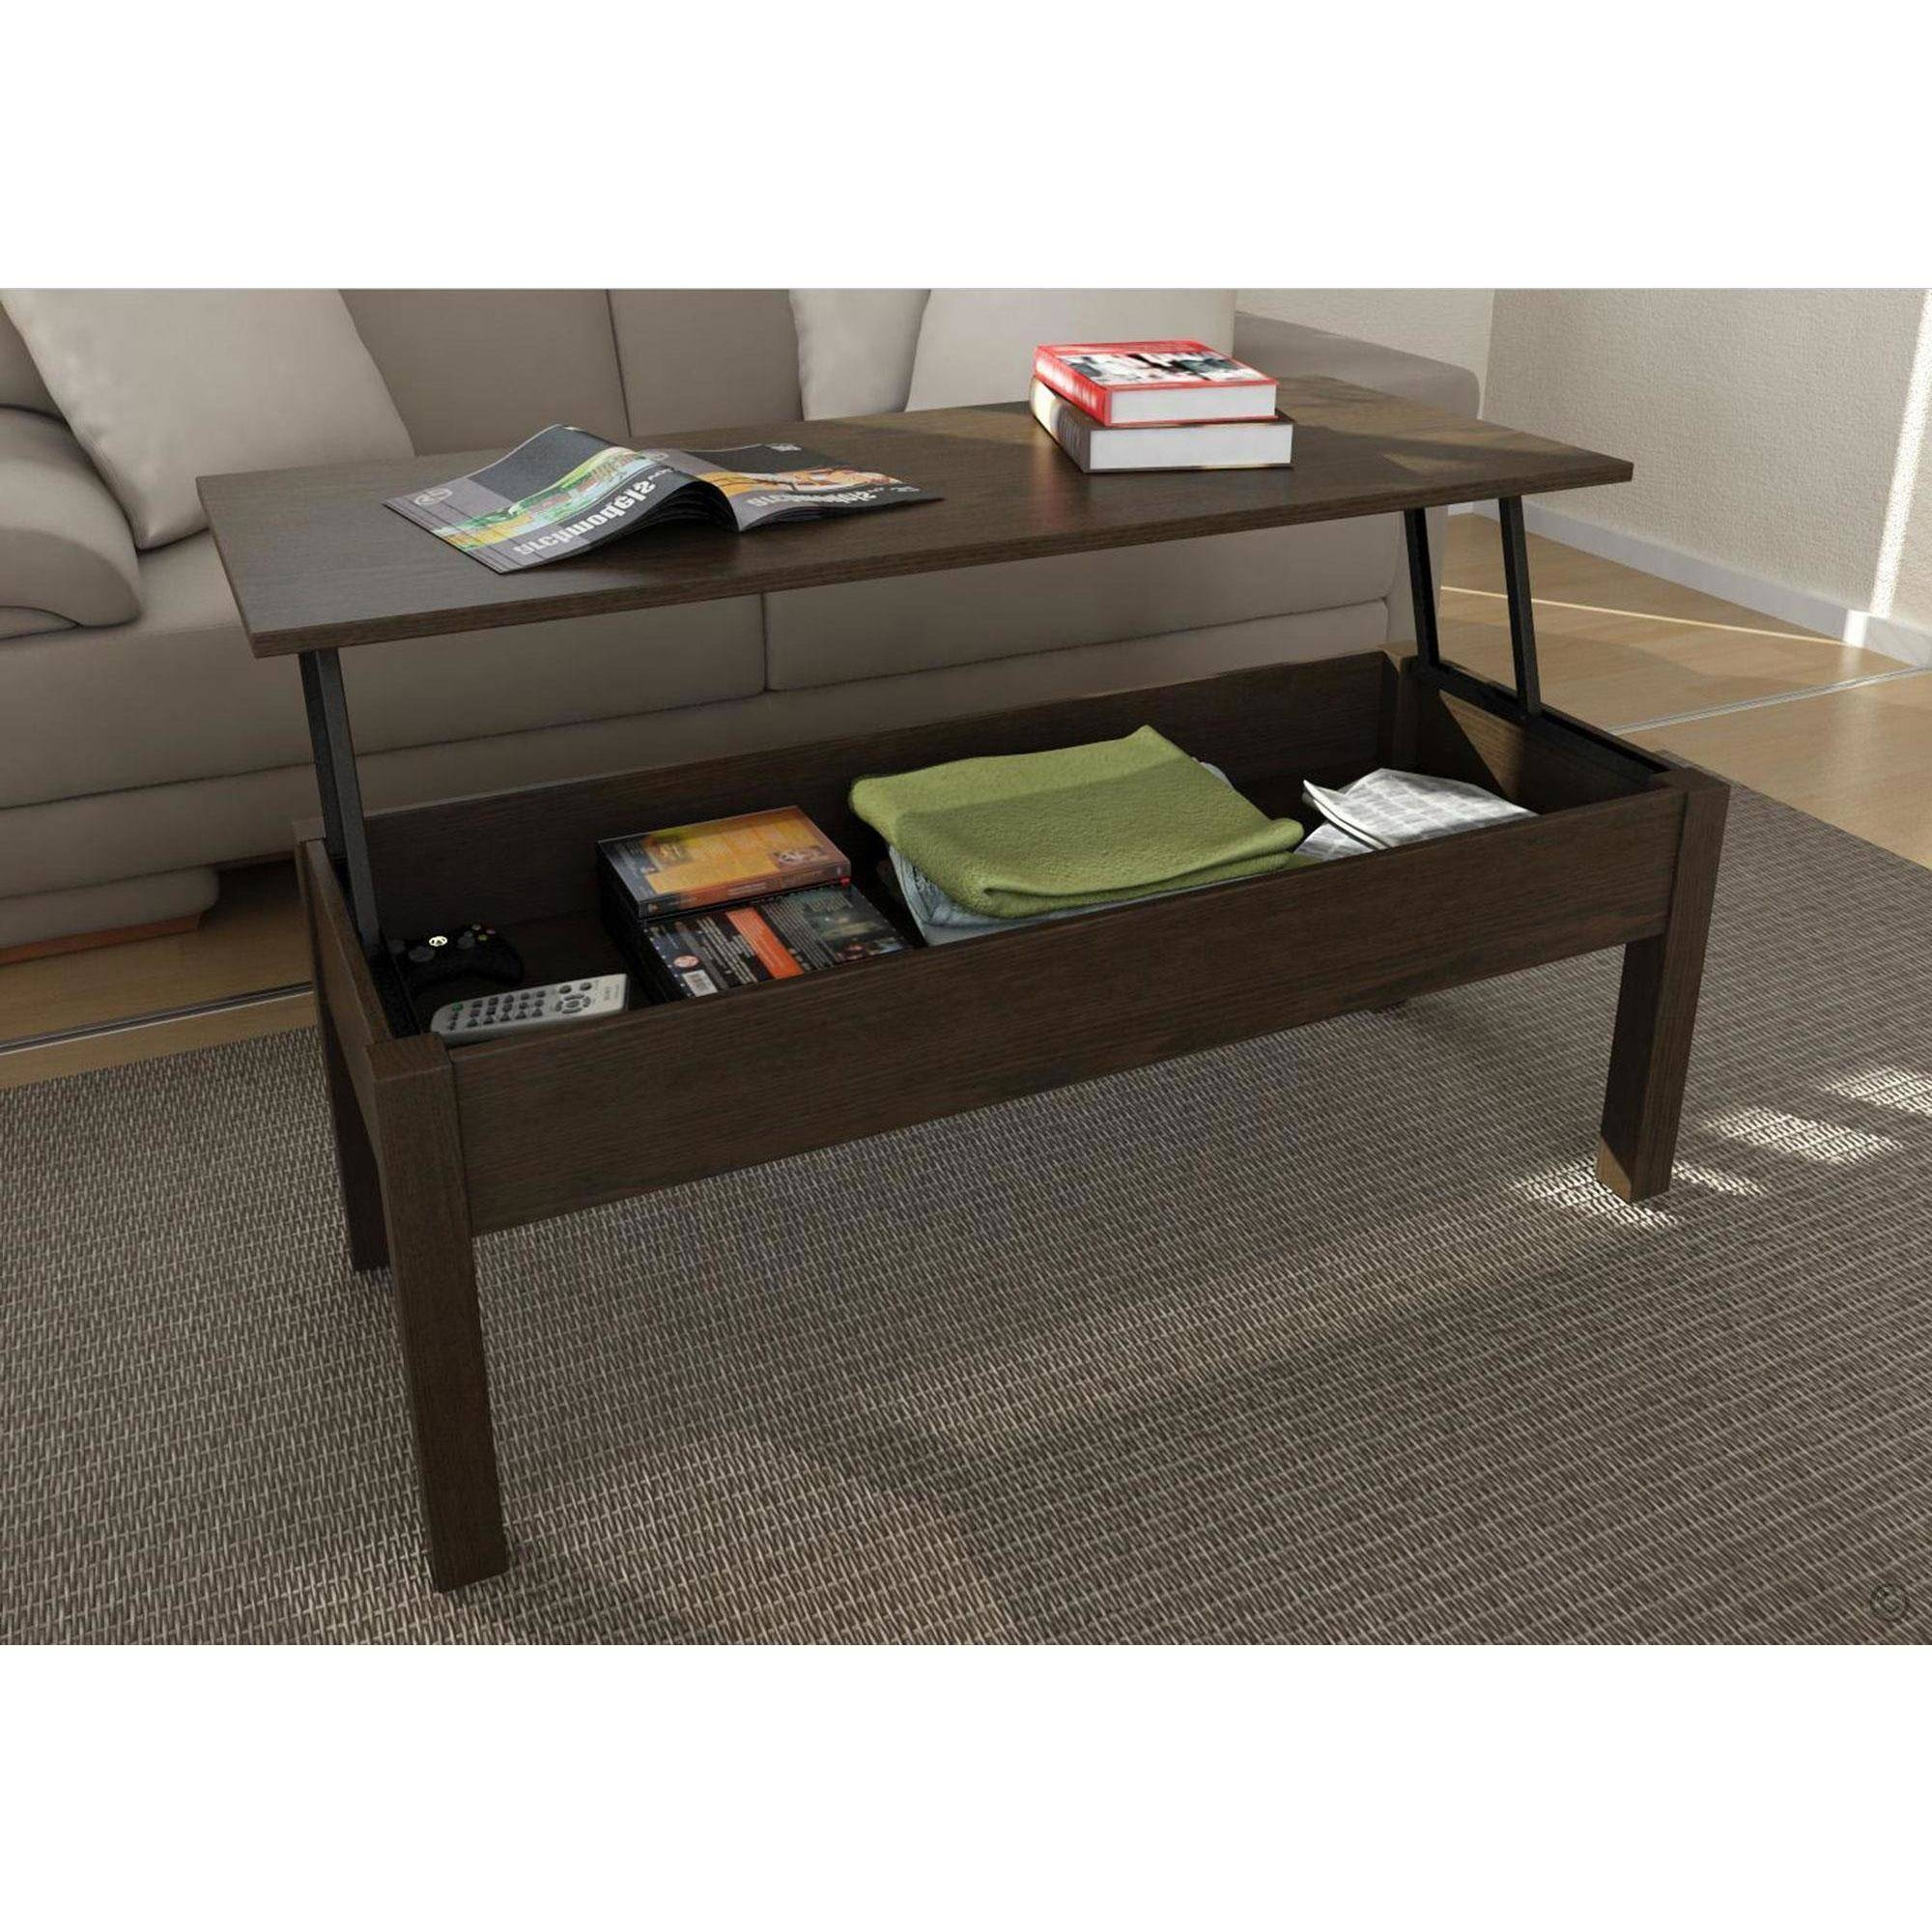 Mainstays Lift-Top Coffee Table, Multiple Colors - Walmart throughout Coffee Tables With Rising Top (Image 21 of 30)